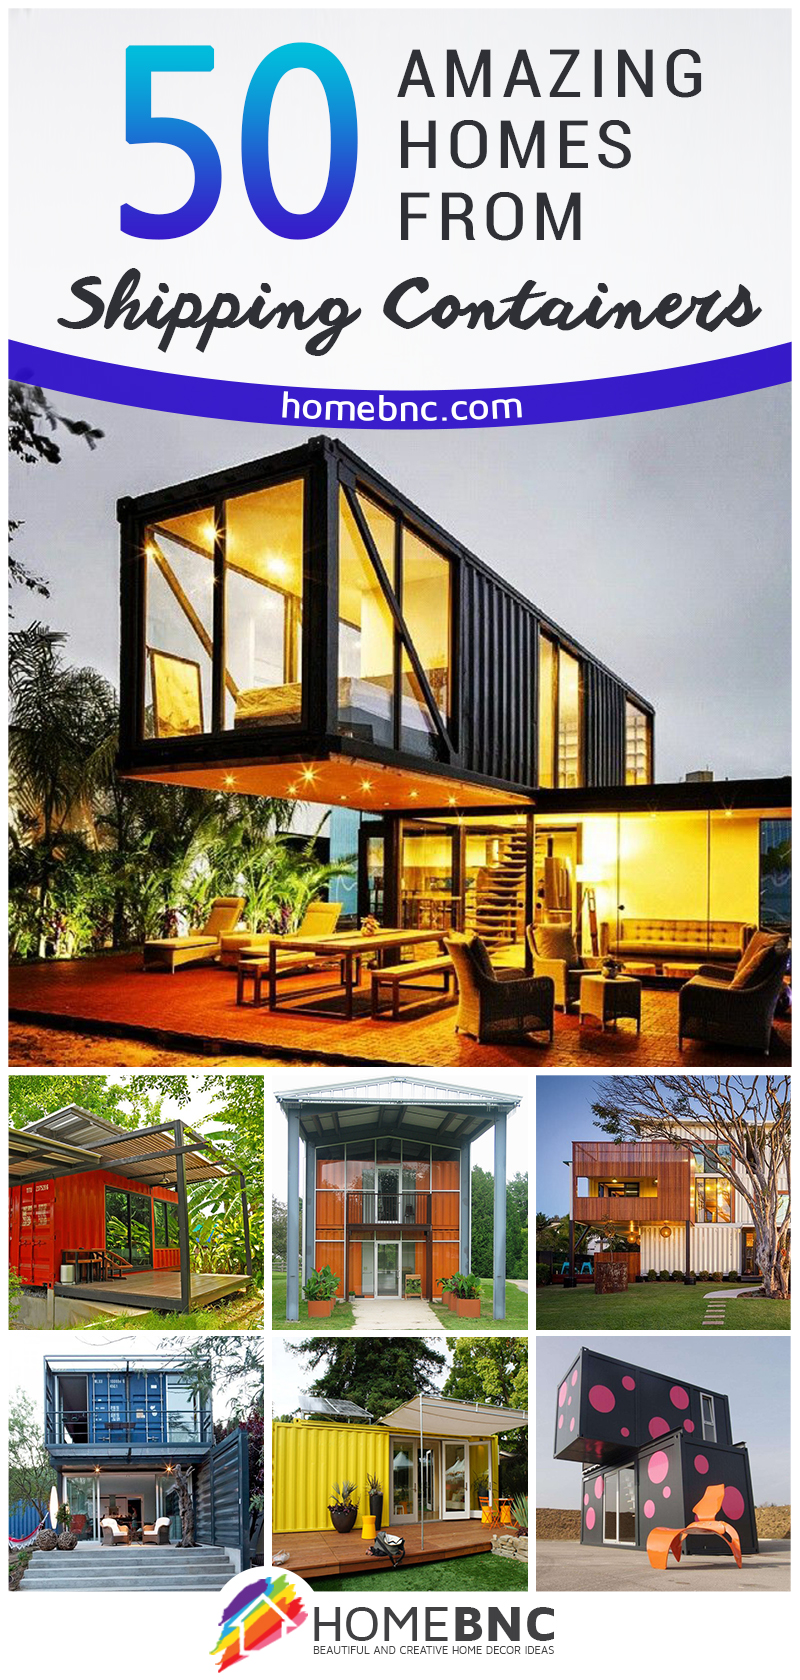 https://homebnc.com/homeimg/2016/04/best-shipping-container-homes-pinterest-share-homebnc.jpg